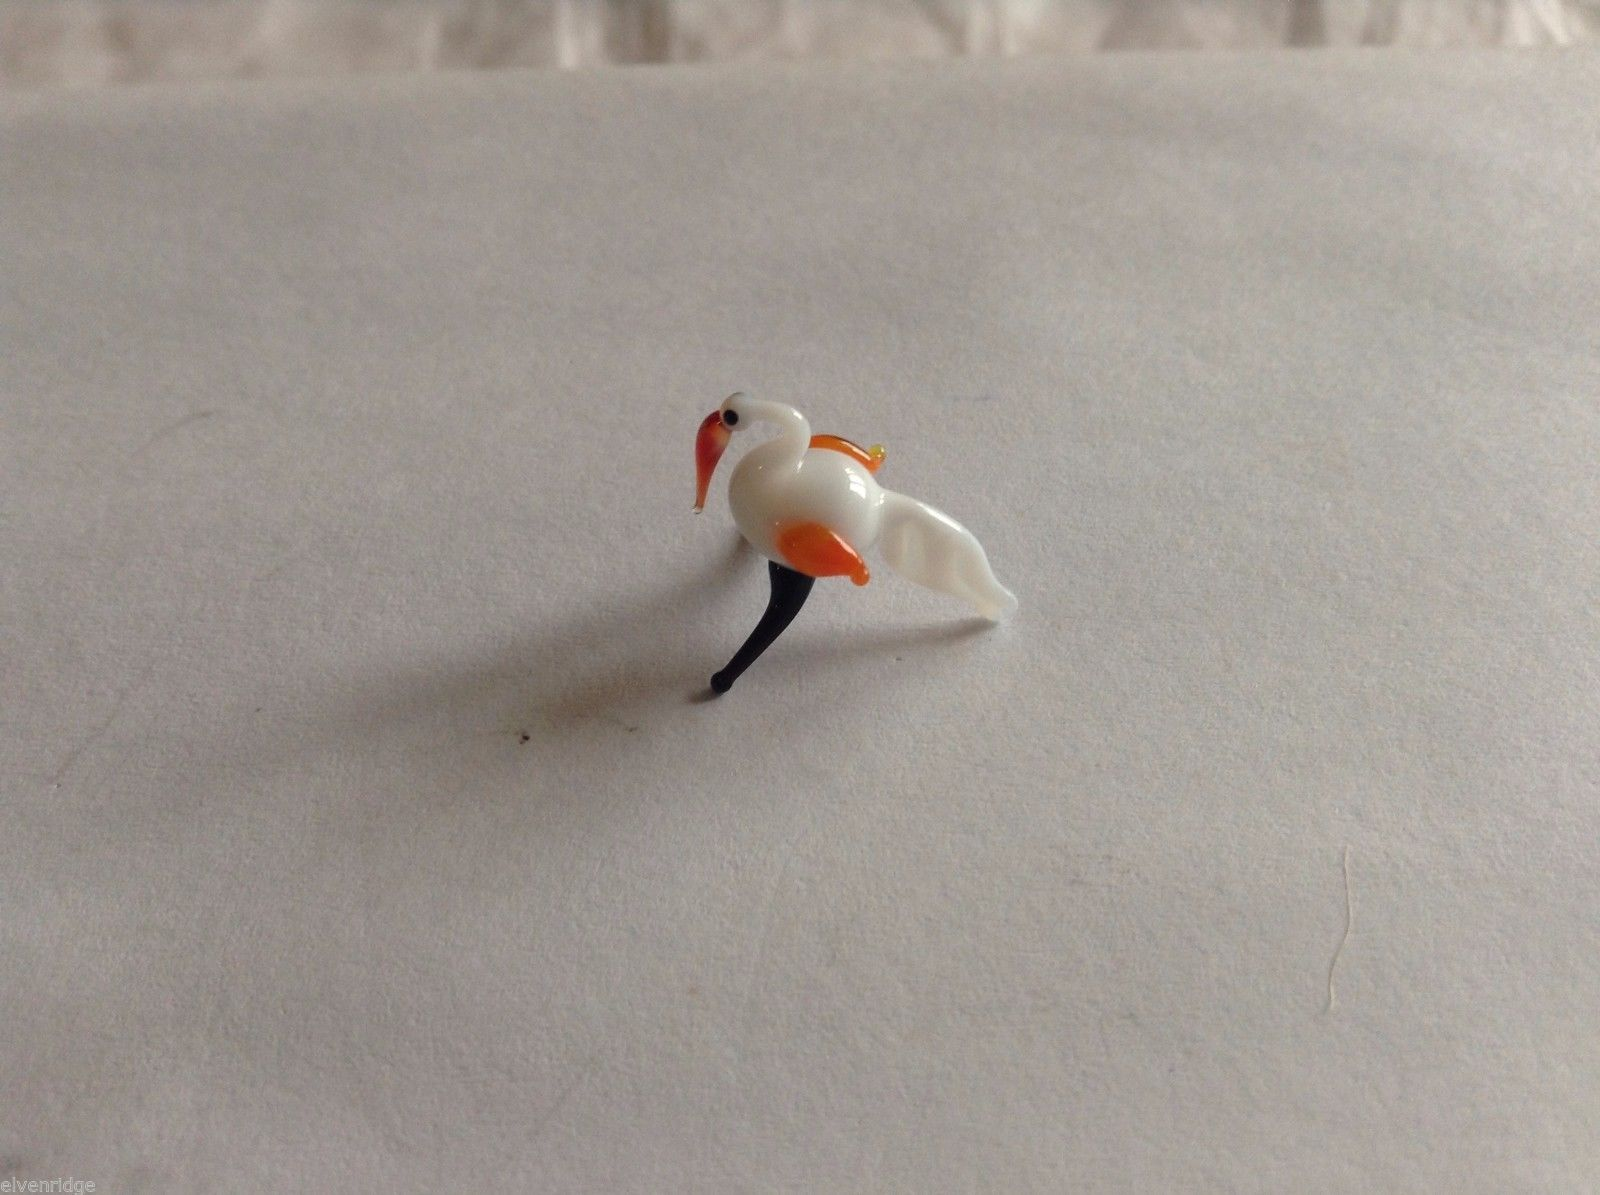 Micro Miniature small hand blown glass made USA NIB white bird w black feet